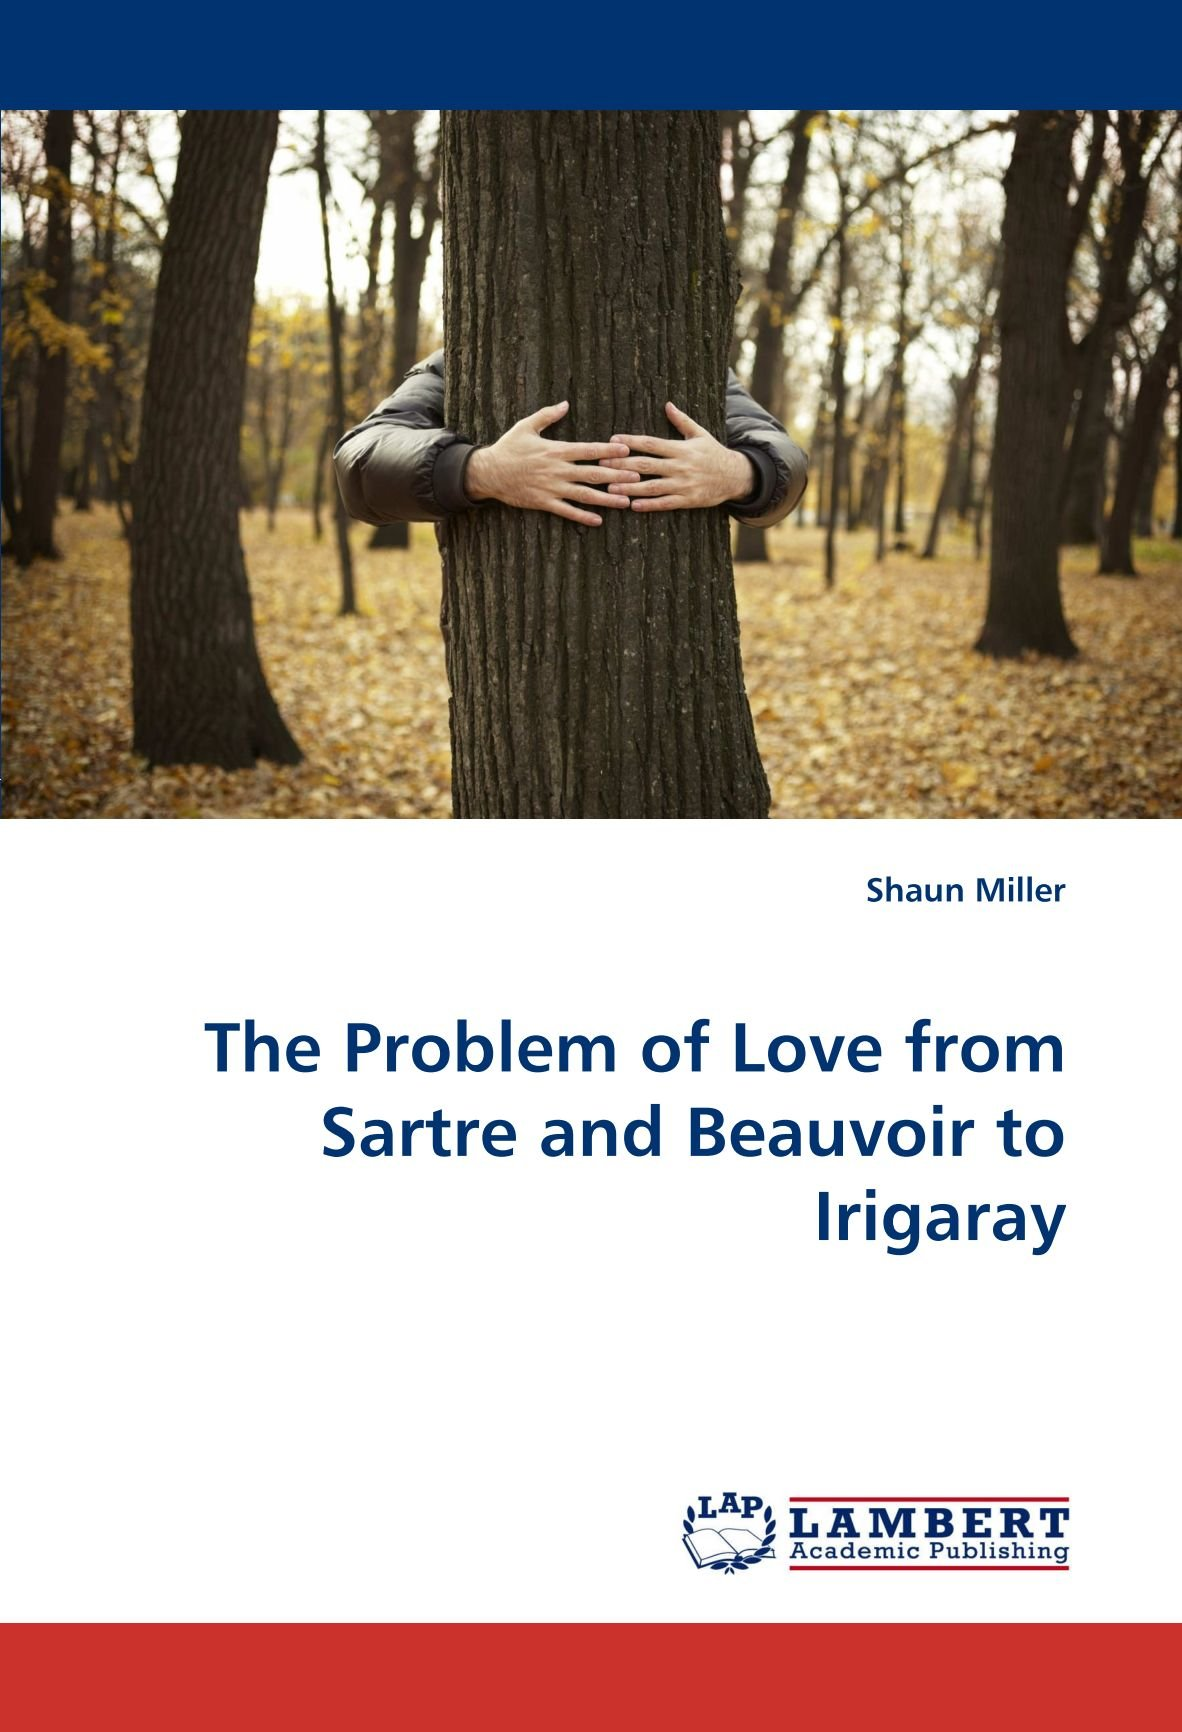 The Problem of Love from Sartre and Beauvoir to Irigaray ebook